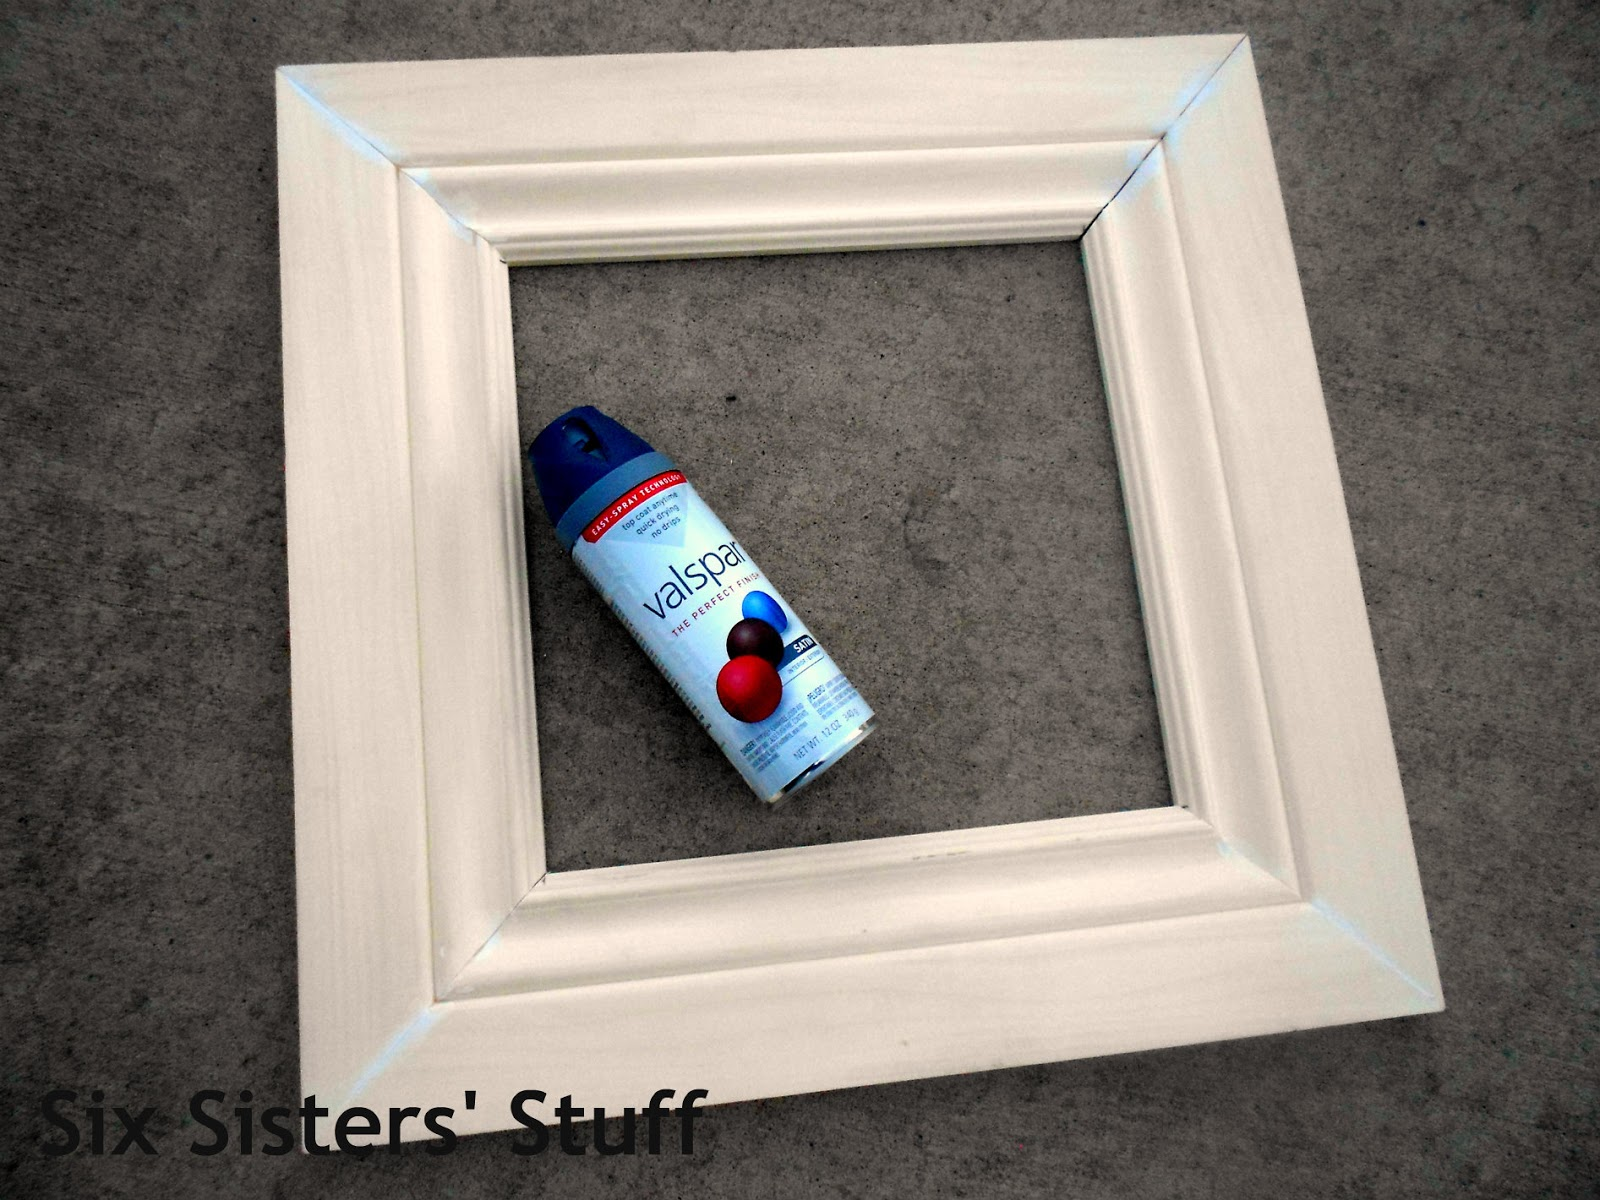 Diy crown moulding picture frames lowes 50 and change project diy crown moulding picture frames lowes 50 and change project six sisters stuff jeuxipadfo Images